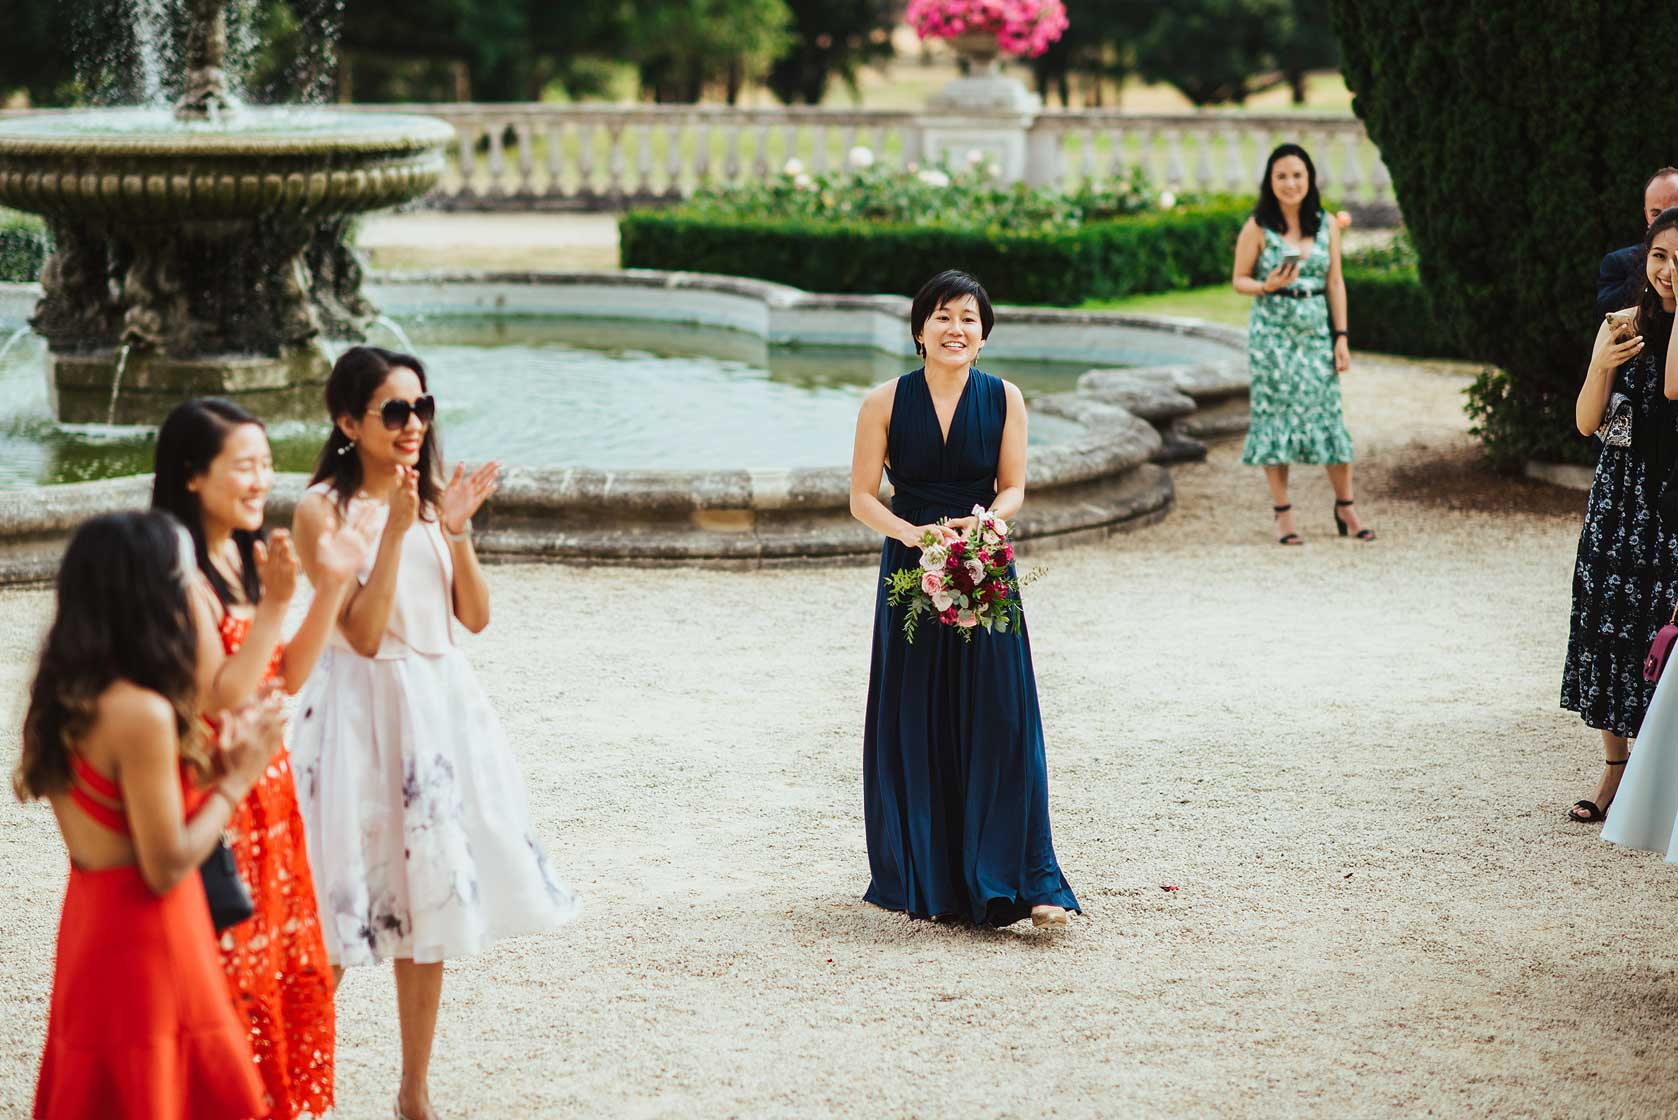 Outdoor Ceremony Wedding Photography